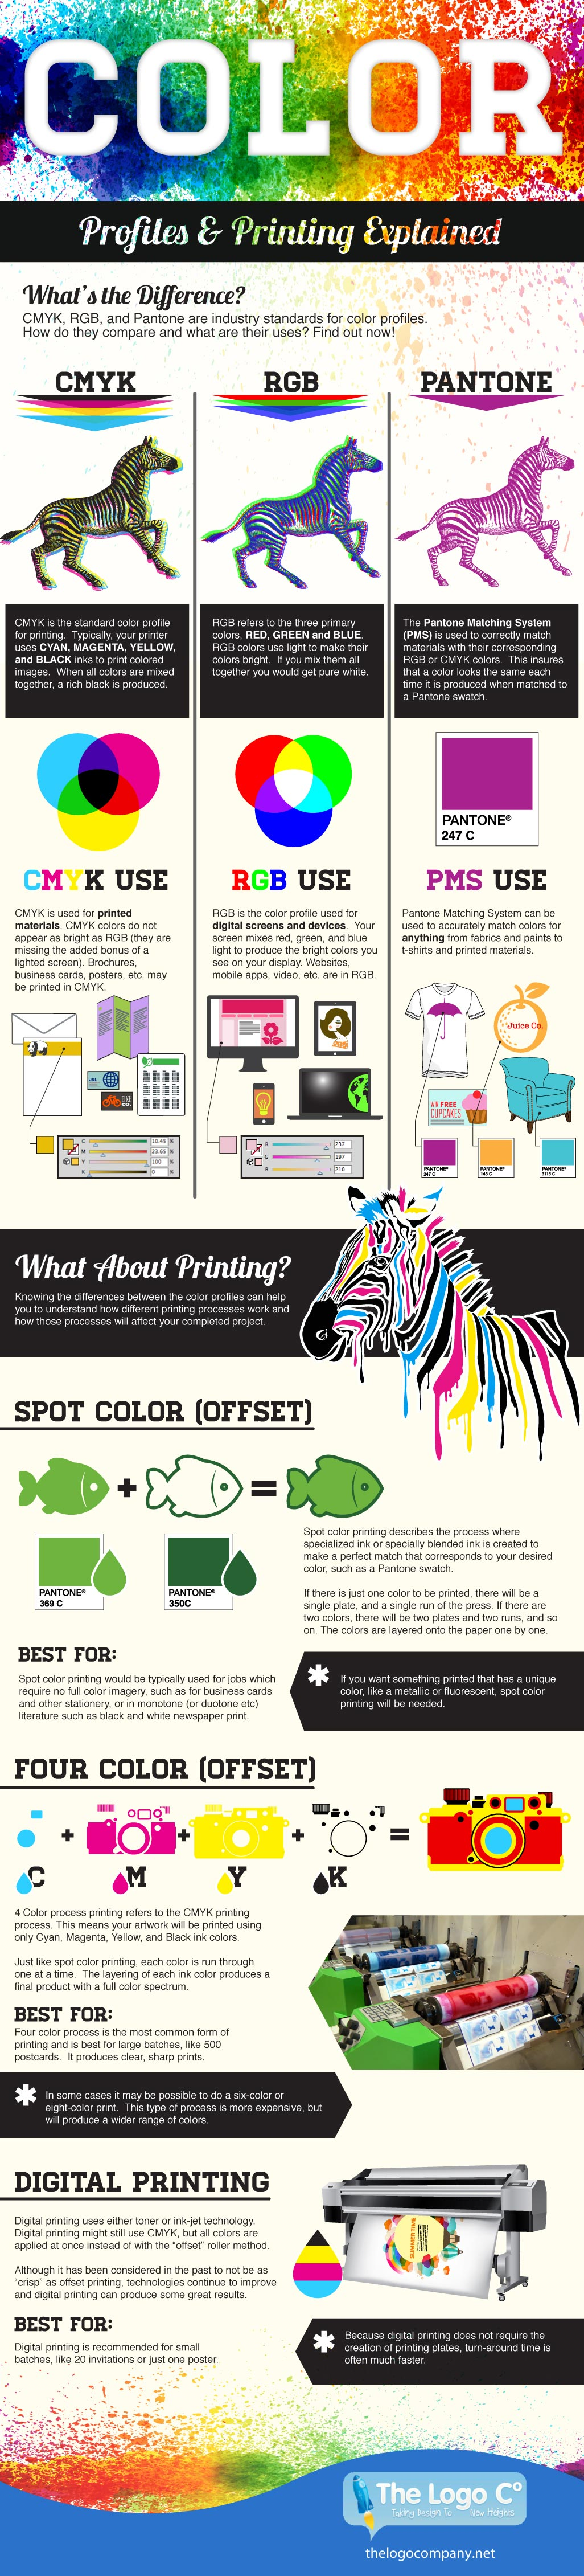 color-printing-large